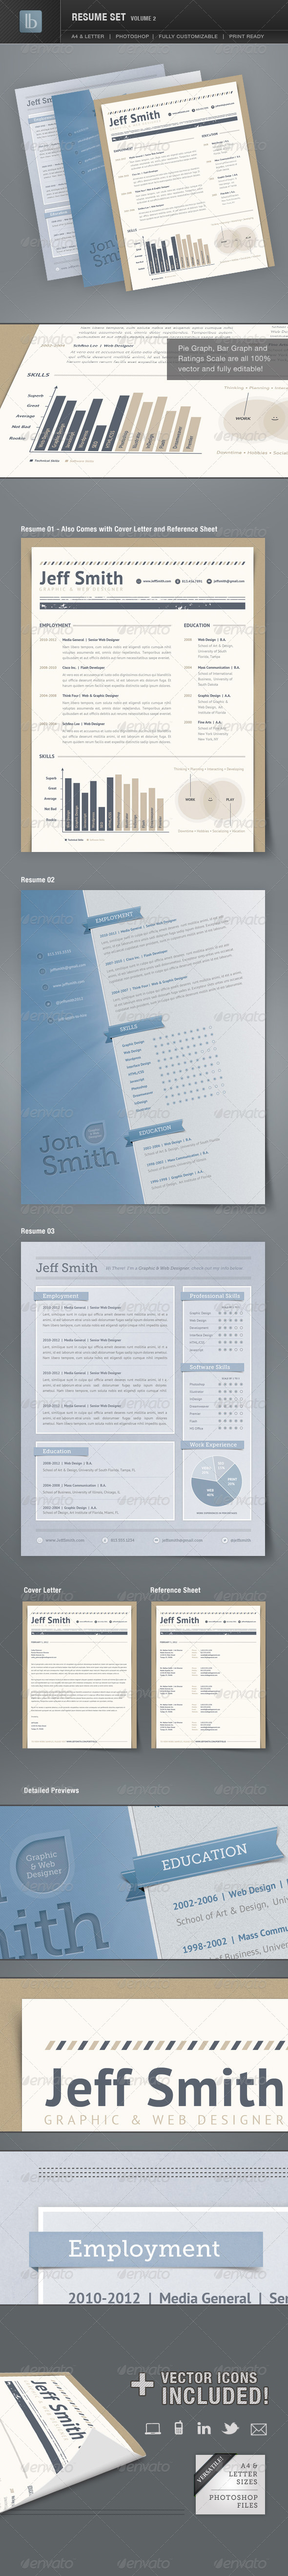 Resume Set | Volume 2 - Resumes Stationery